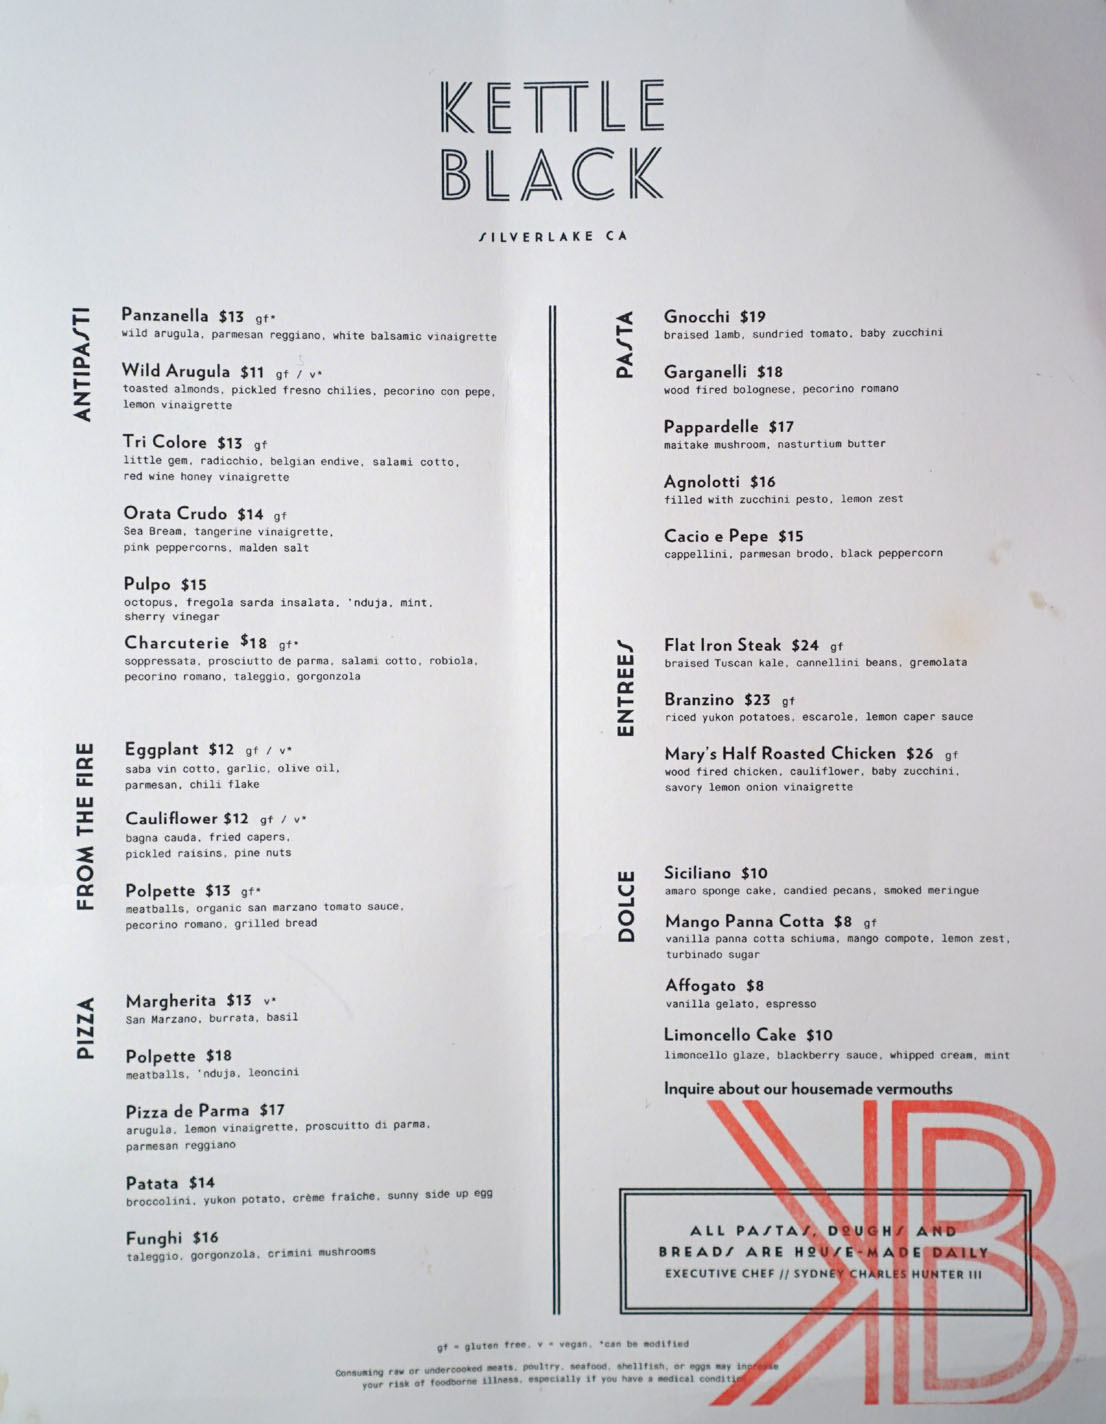 kettle black los angeles ca  kettle black menu